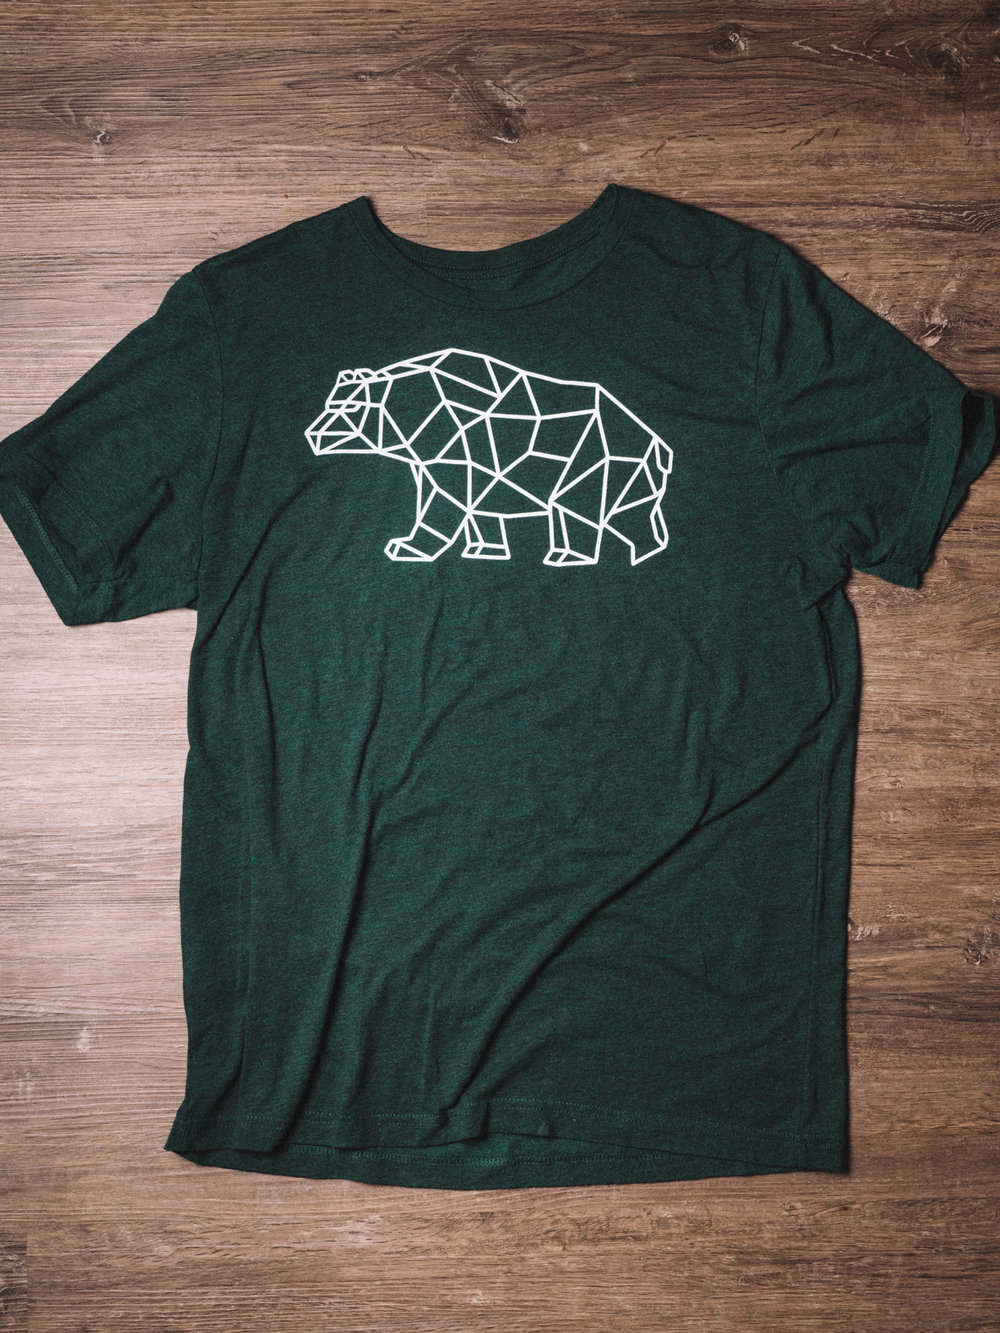 Leftcoast_green_Shirt_.jpg